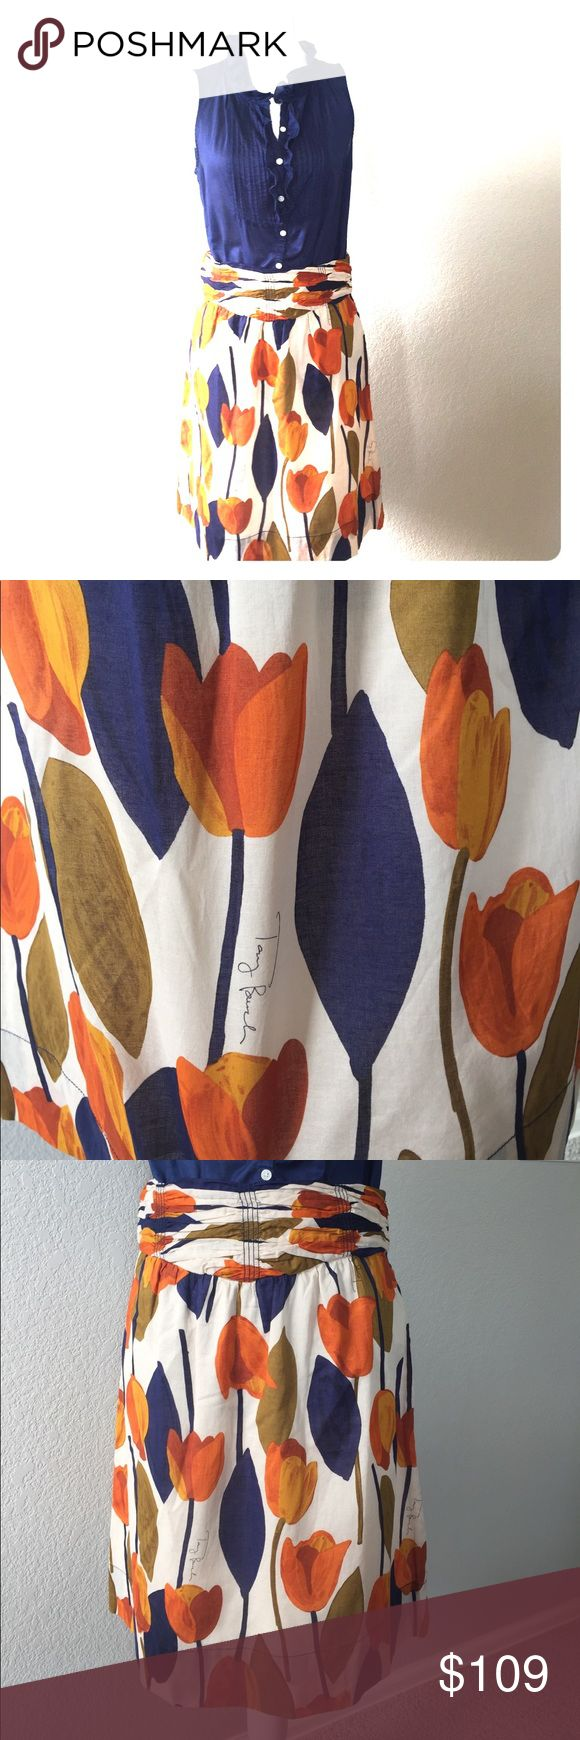 """Tory Burch Skirt Sz 6 Tory Burch Skirt, Tulip Print with Tory's signature on the print. EUC, Lightweight, 100% Cotton. Rare/HTF. Side zip with hook and eye closure. Very small, double stitch on the side hem (see pic). Cream, Oranges, Gold/brown, Indigo blues. 22.5"""" from waist to hem. Seriously adorable. Retail $295. Tory Burch Skirts Midi"""